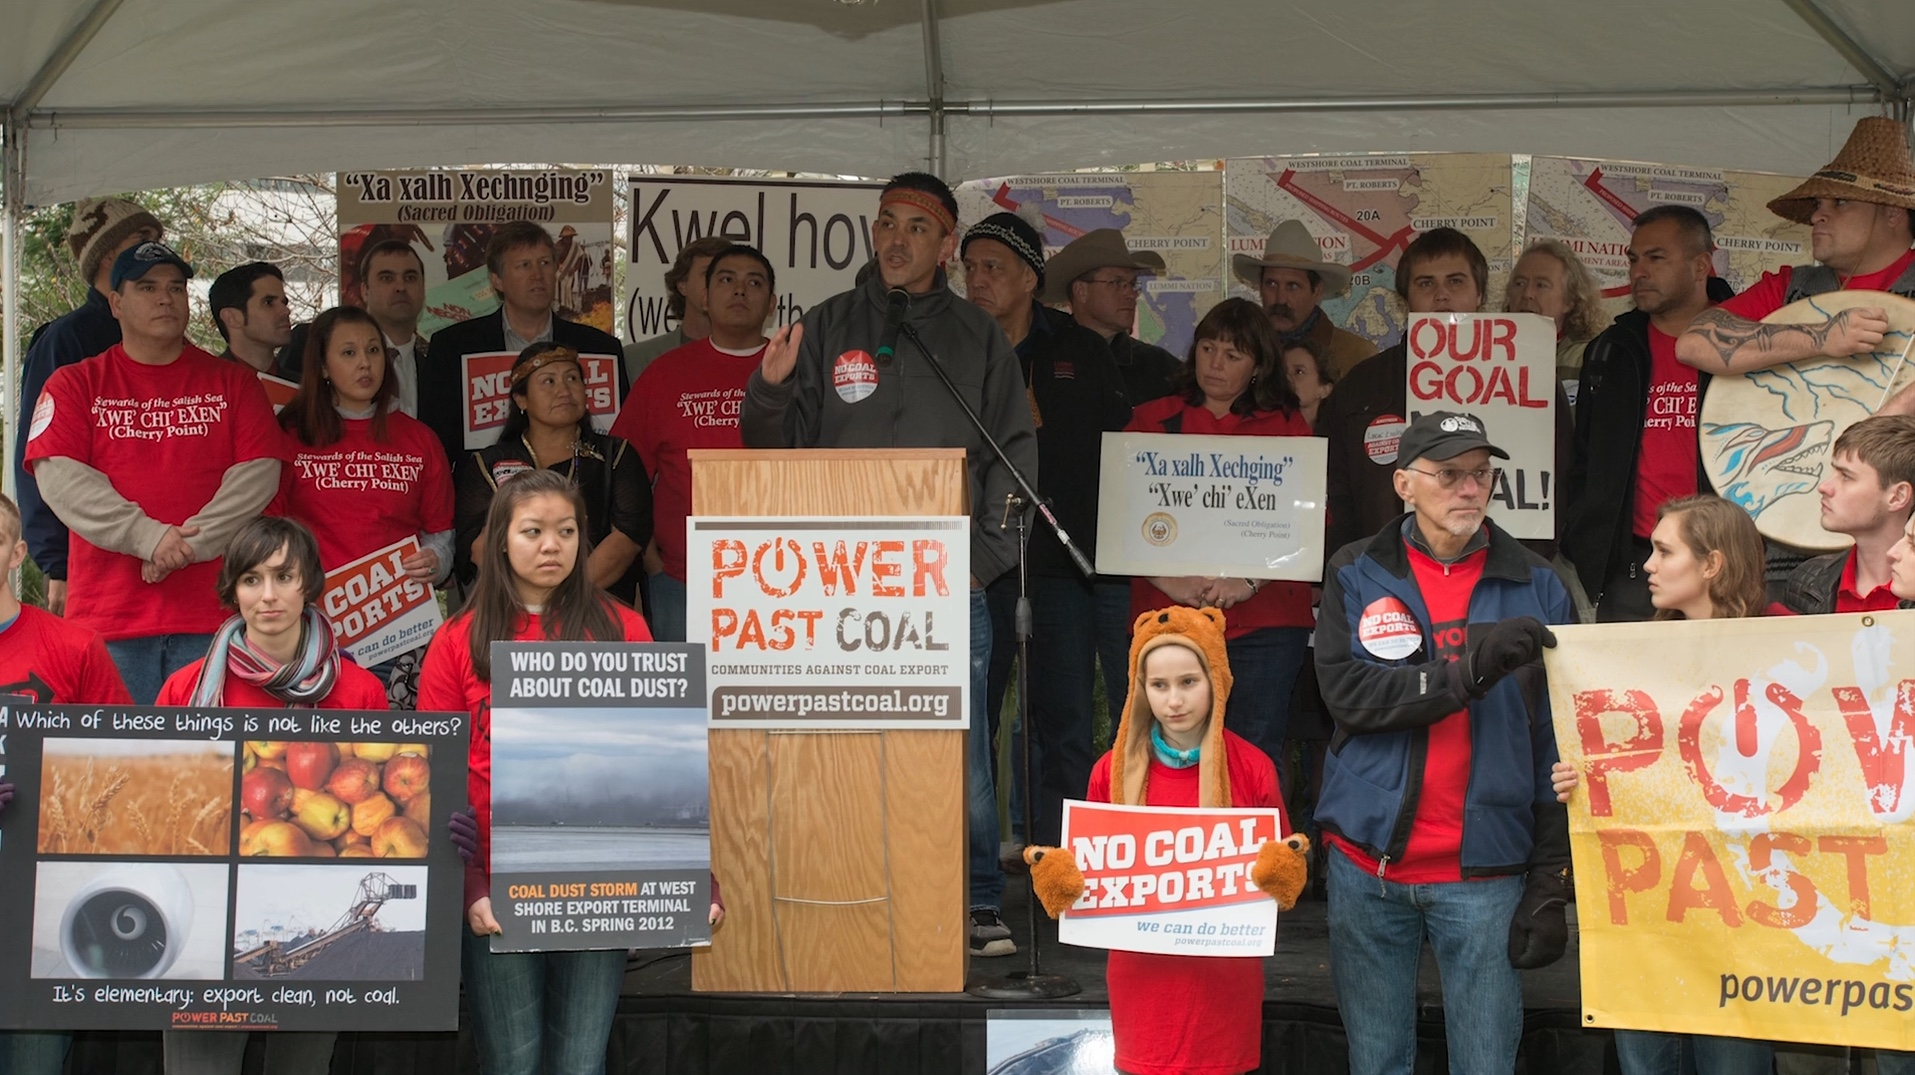 Jay Julius, Lummi Nation chairman, speaking out about the proposed Coal Trains. Photo by Paul Anderson.